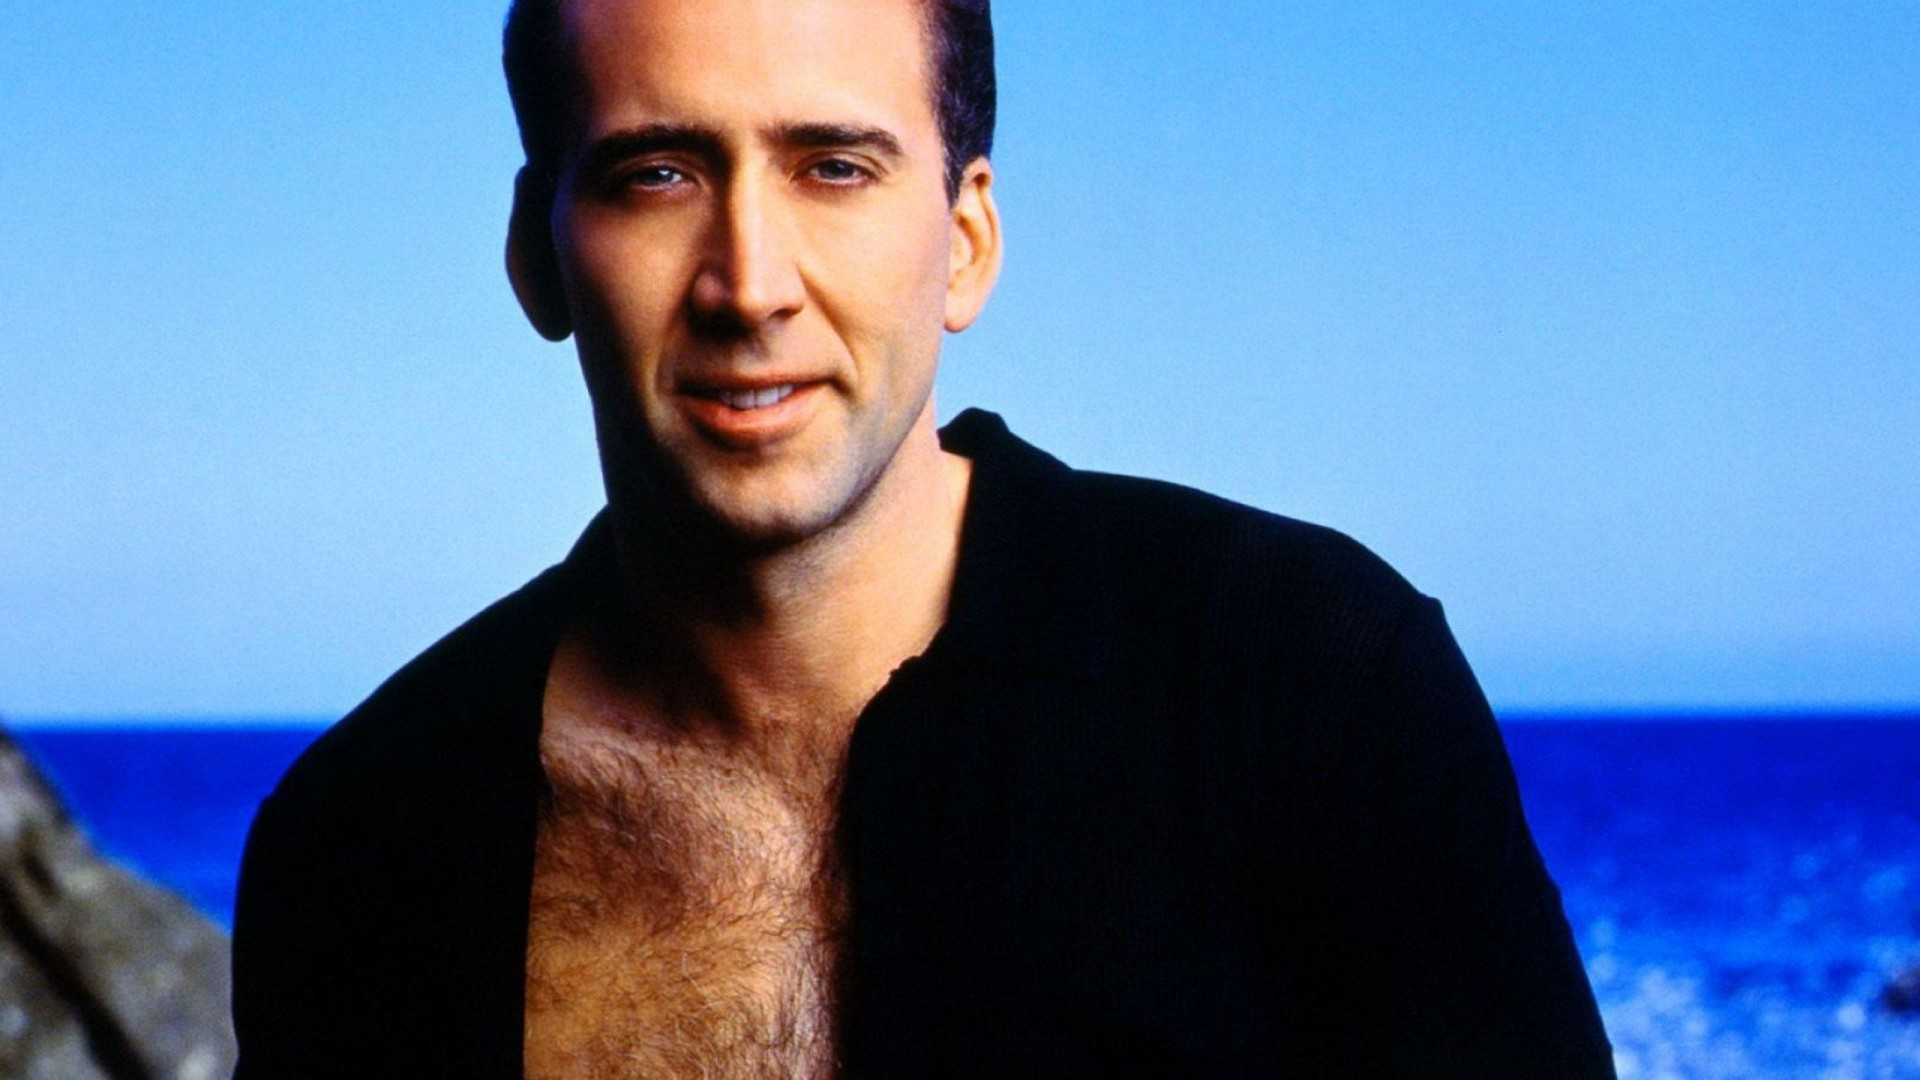 74] Nicholas Cage Wallpaper on WallpaperSafari 1920x1080